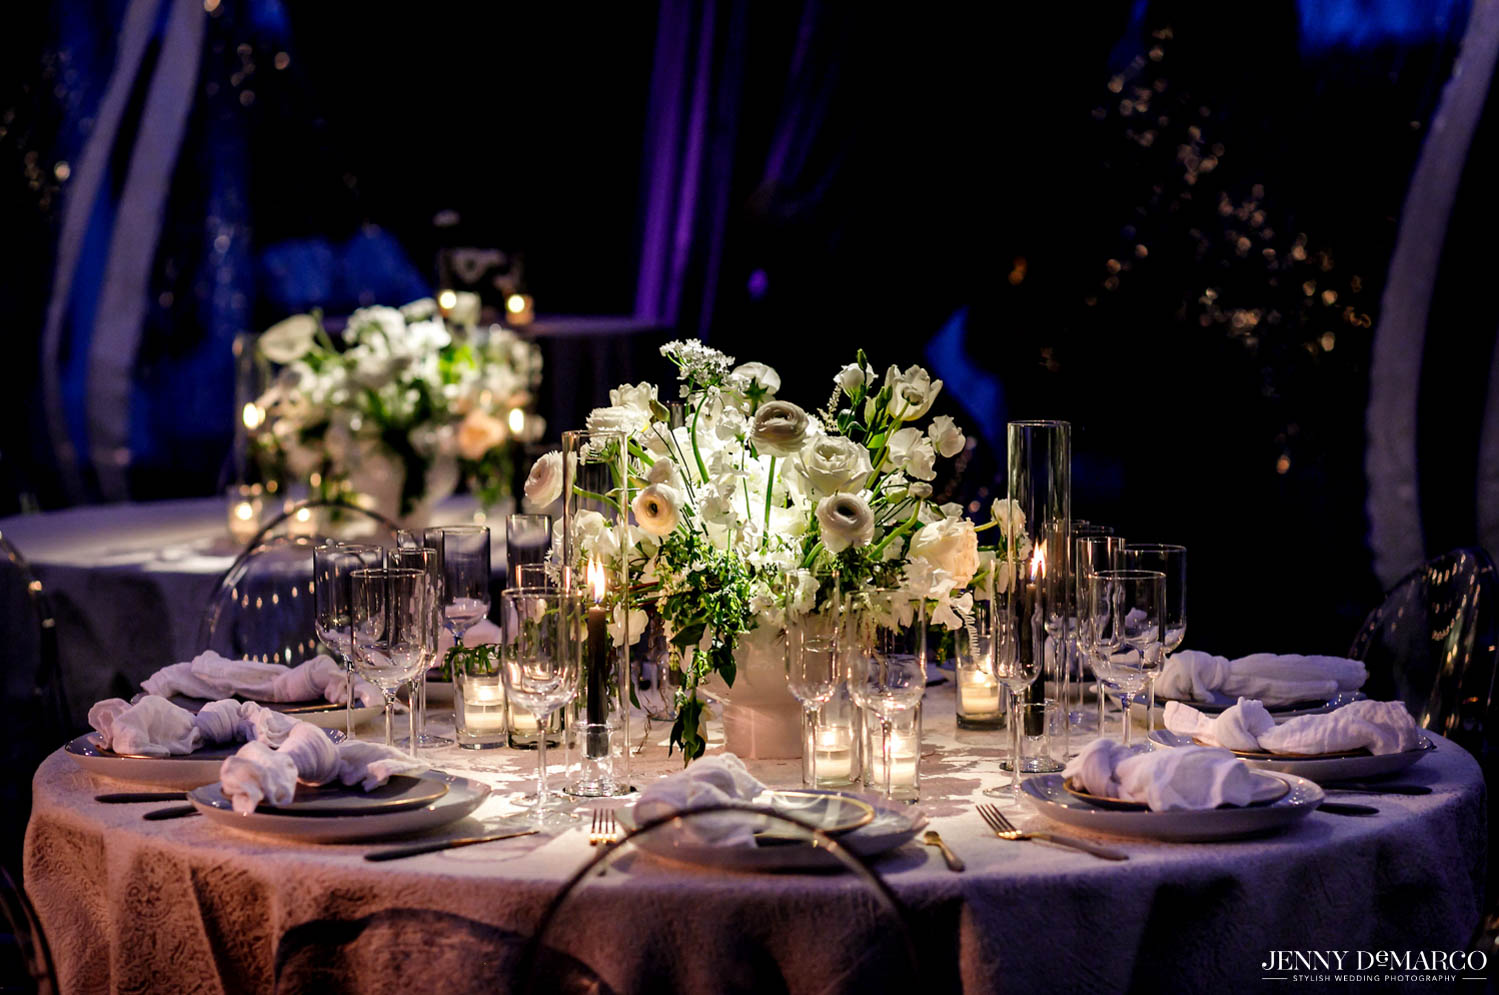 set dining table at evening with lit candles around the white floral arrangement in center